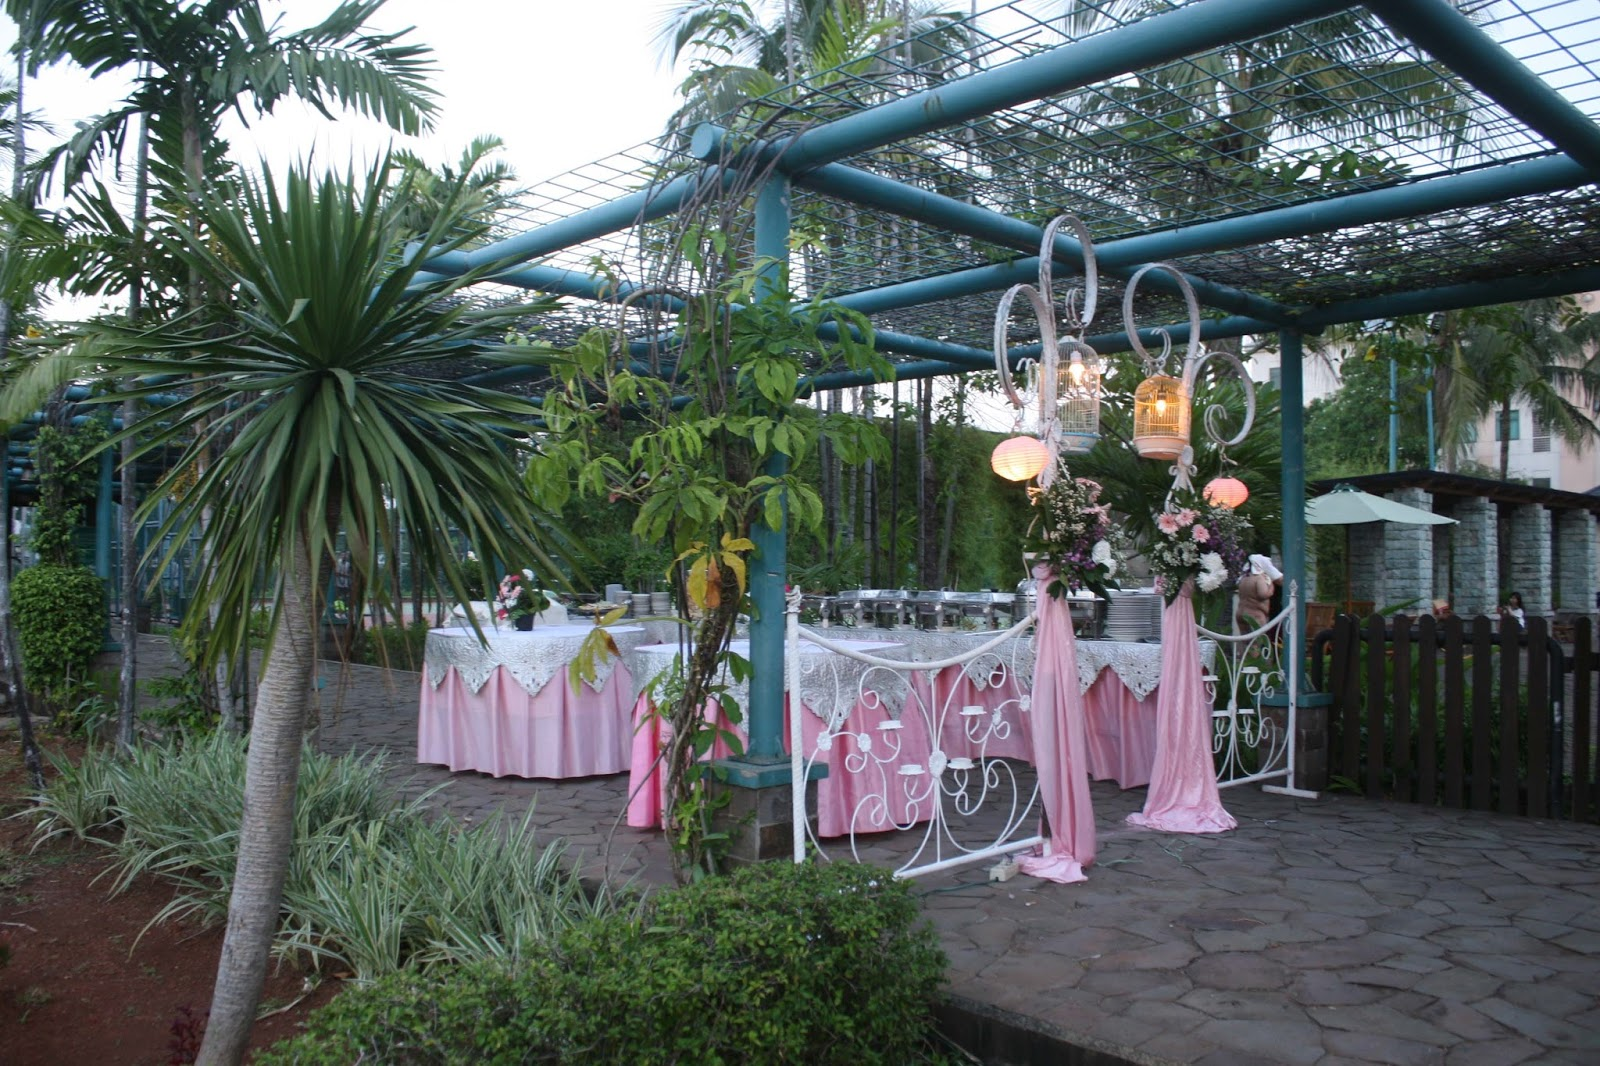 Wedding decoration murah di jakarta choice image wedding dress outdoor wedding decoration jakarta image collections wedding wedding decoration murah di jakarta images wedding dress dekorasi junglespirit Gallery